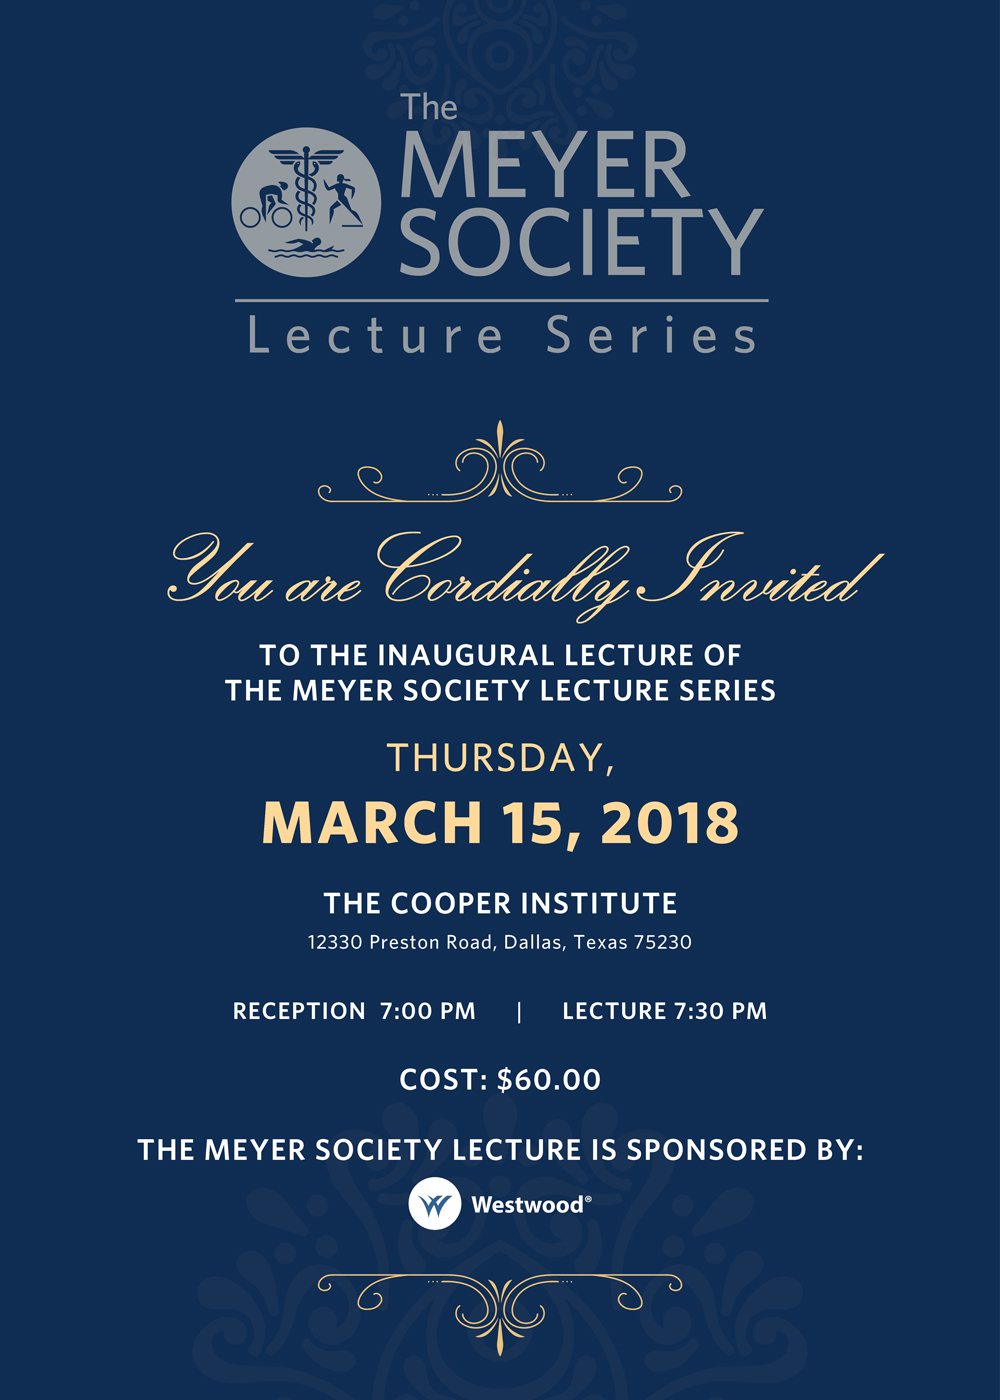 The Meyer Society Lecture Series feauring William H. McRaven - Purchase Your Tickets Today!